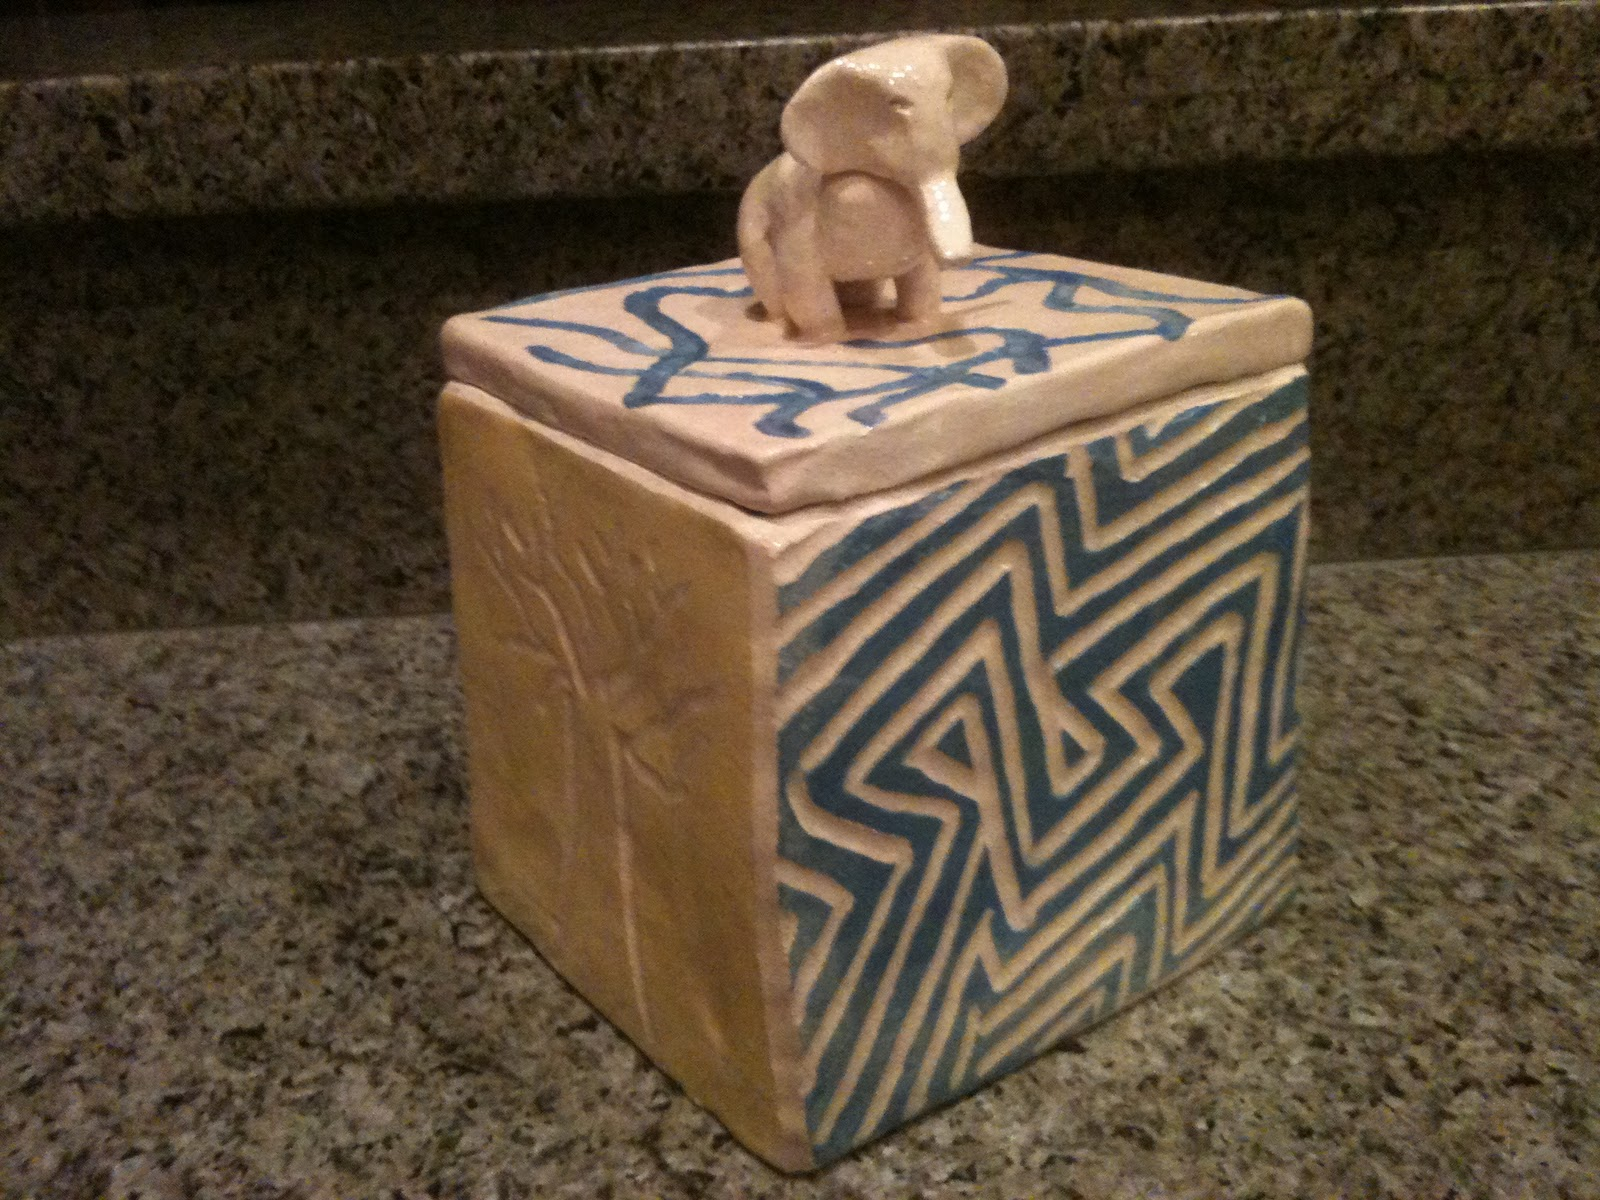 Slab Box as well  together with Air Plants Succulents Diy Roundup further The Simple Beauty Of Native American Pottery furthermore Realistic Animal. on pinch pot design ideas